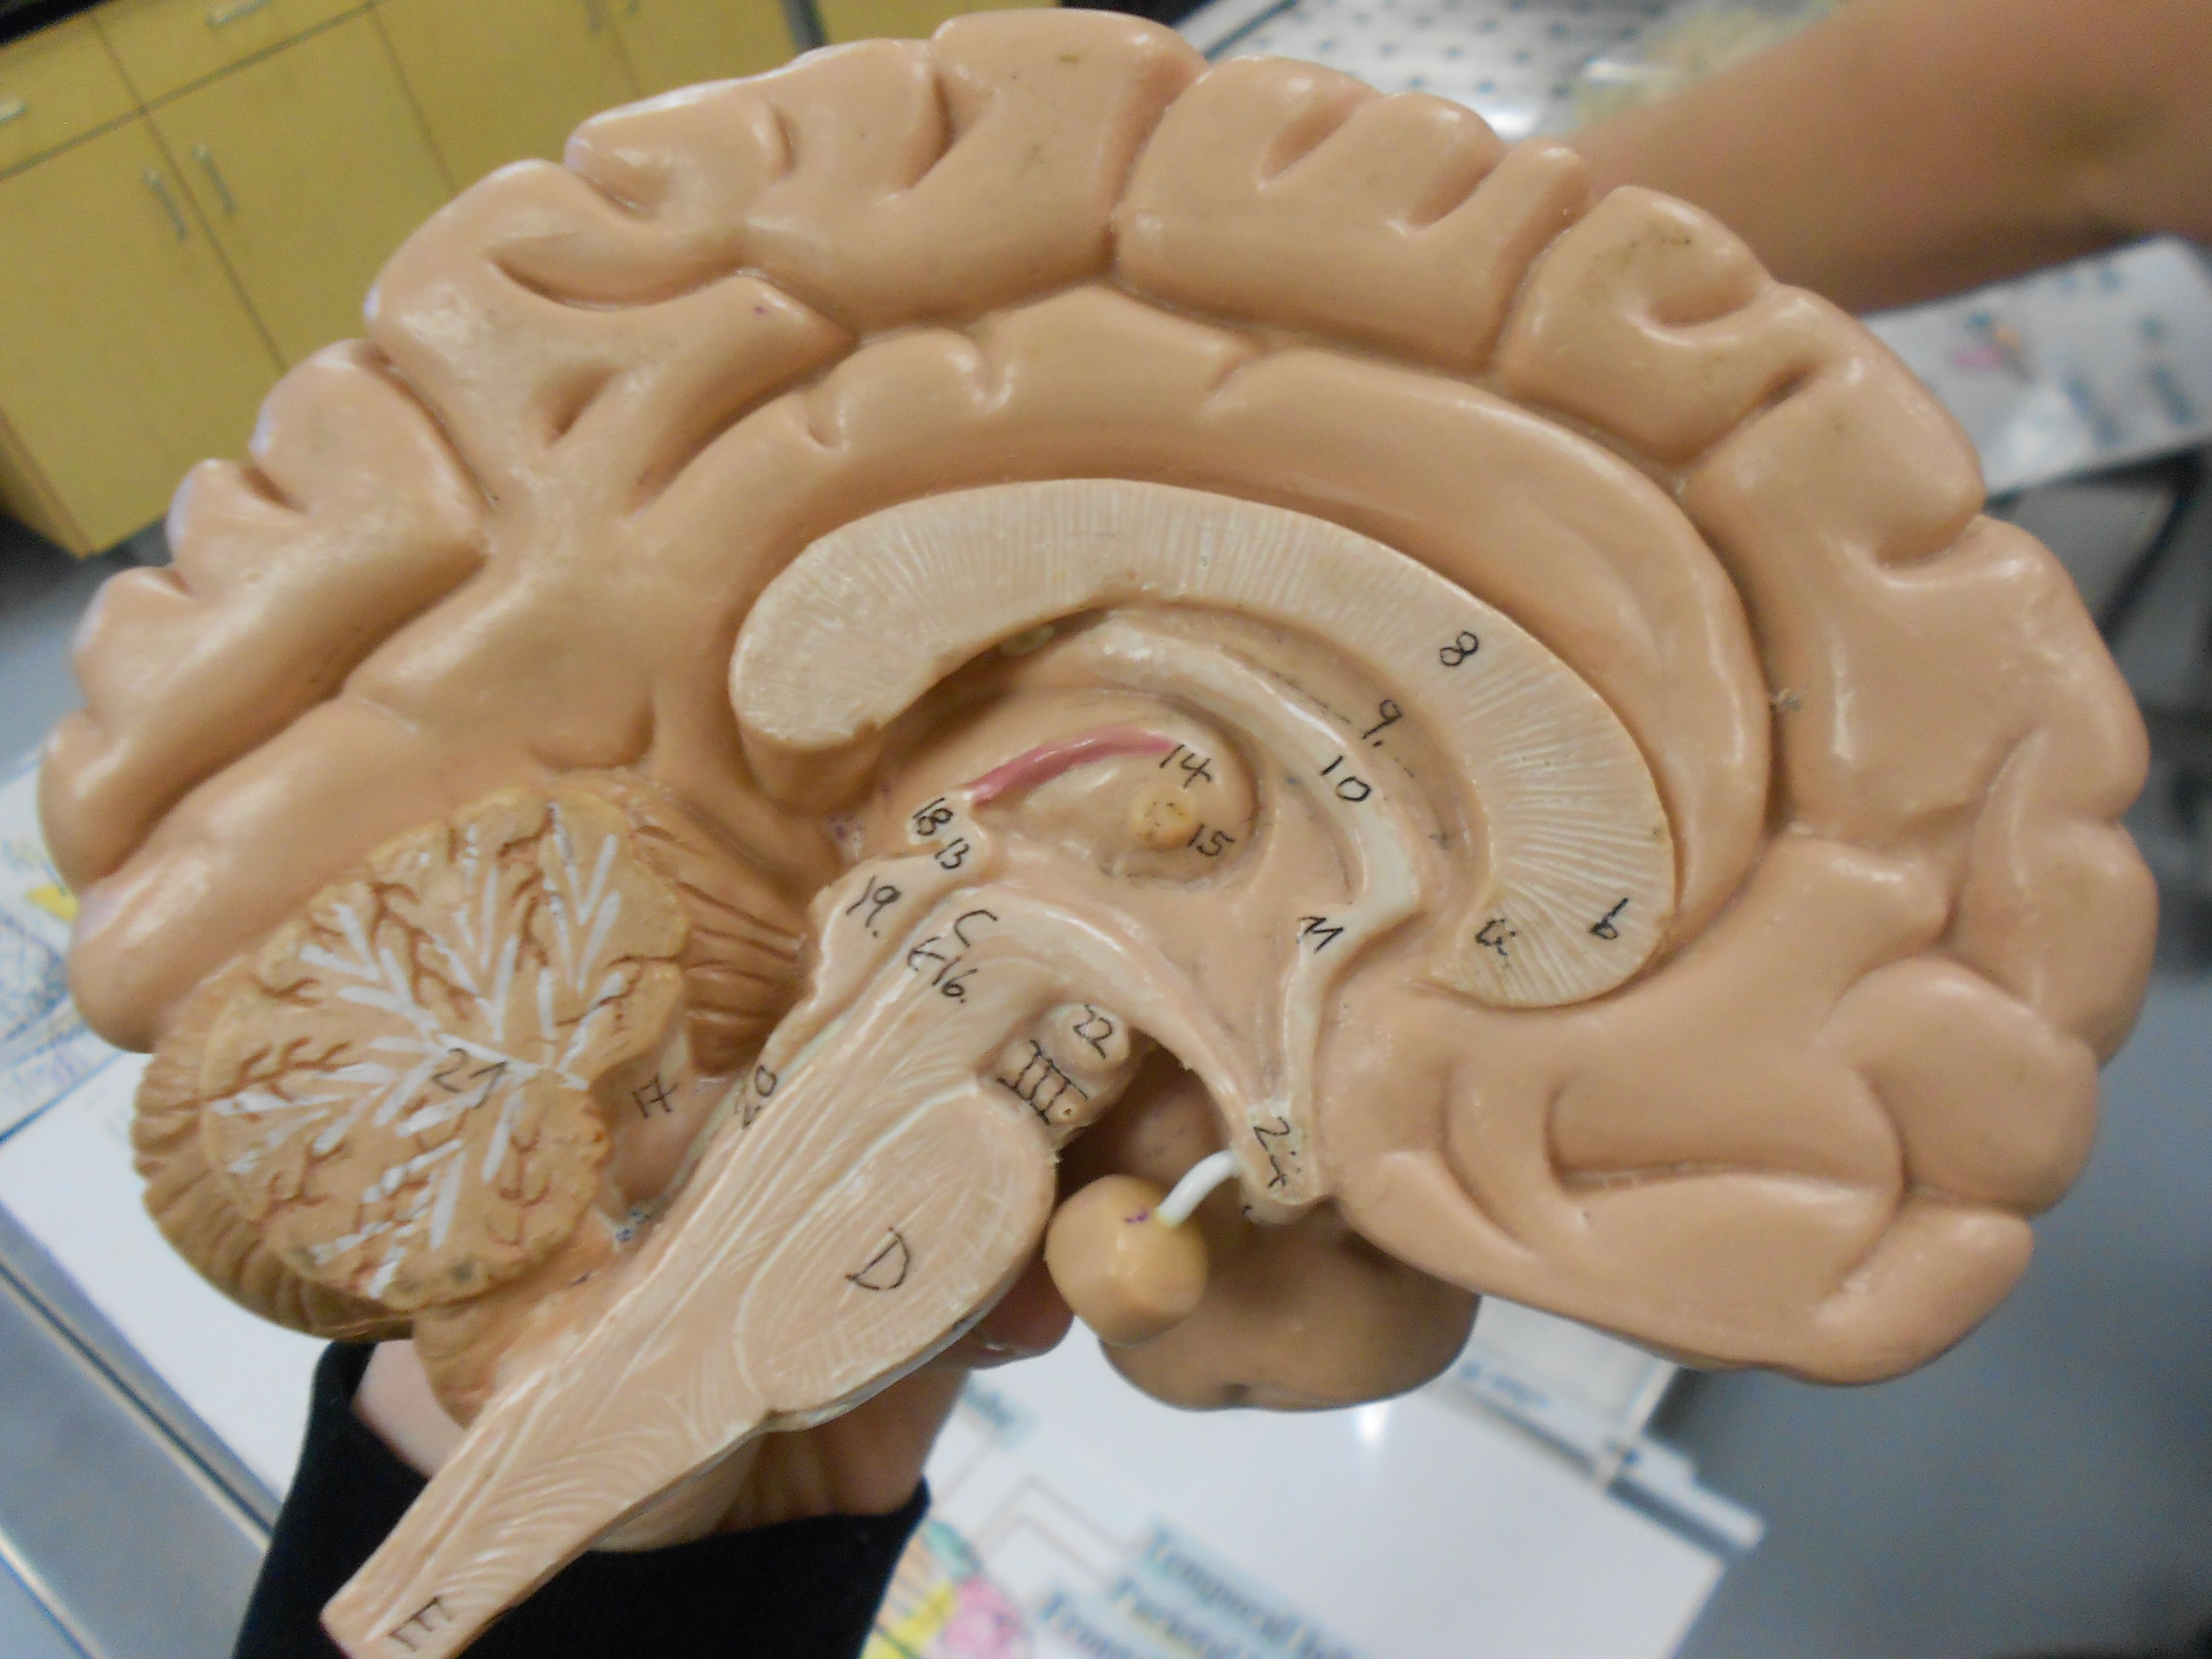 Hemisphere Brain Model Featuring A Pituitary Gland